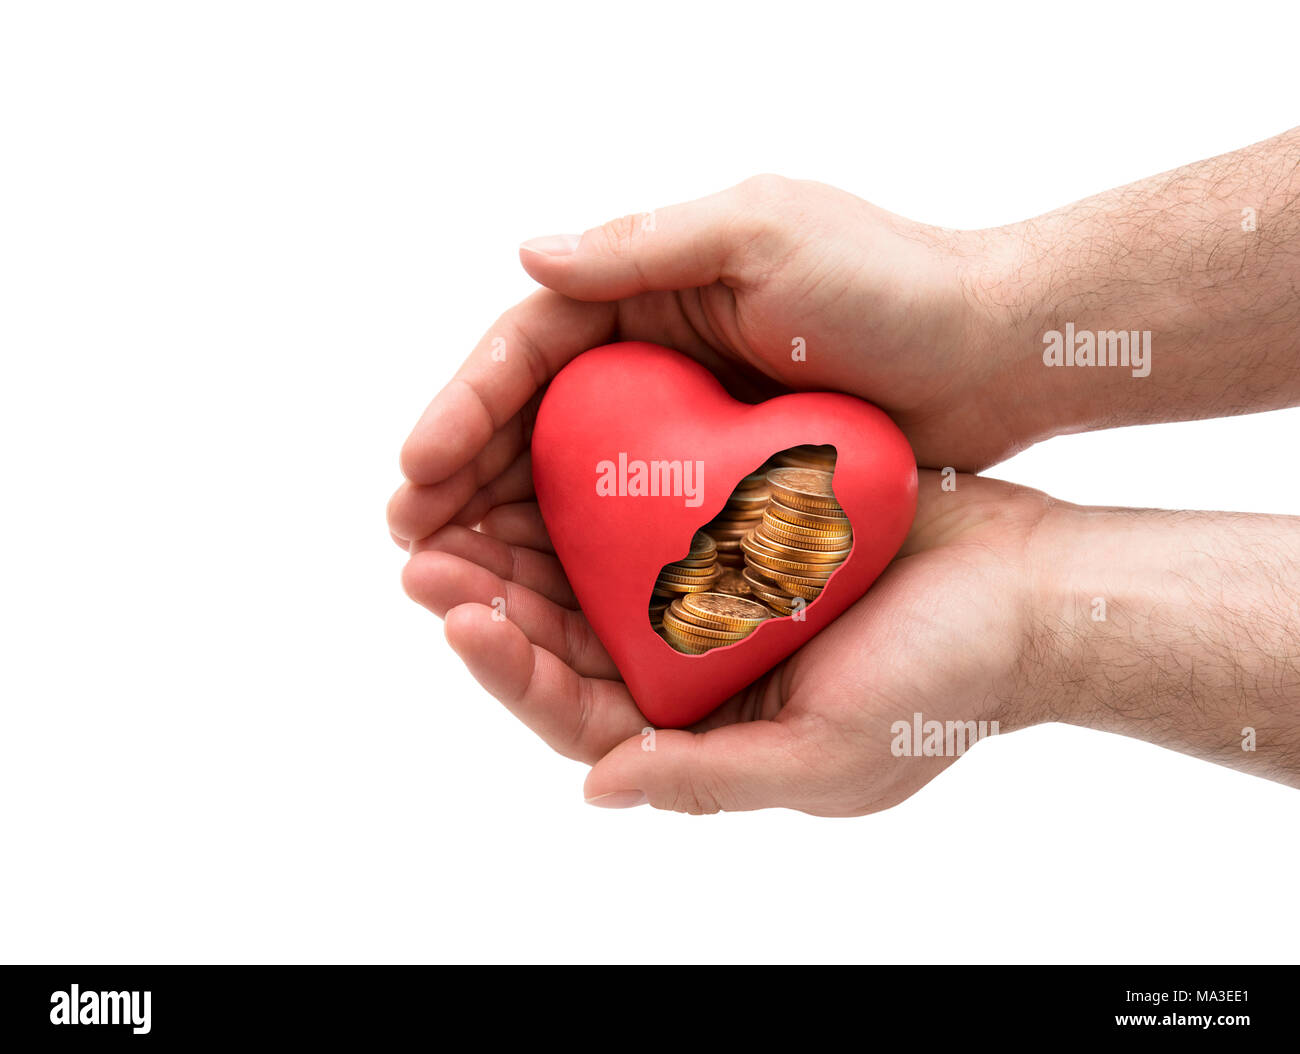 Red heart with golden coins in hands over white background with clipping path - Stock Image